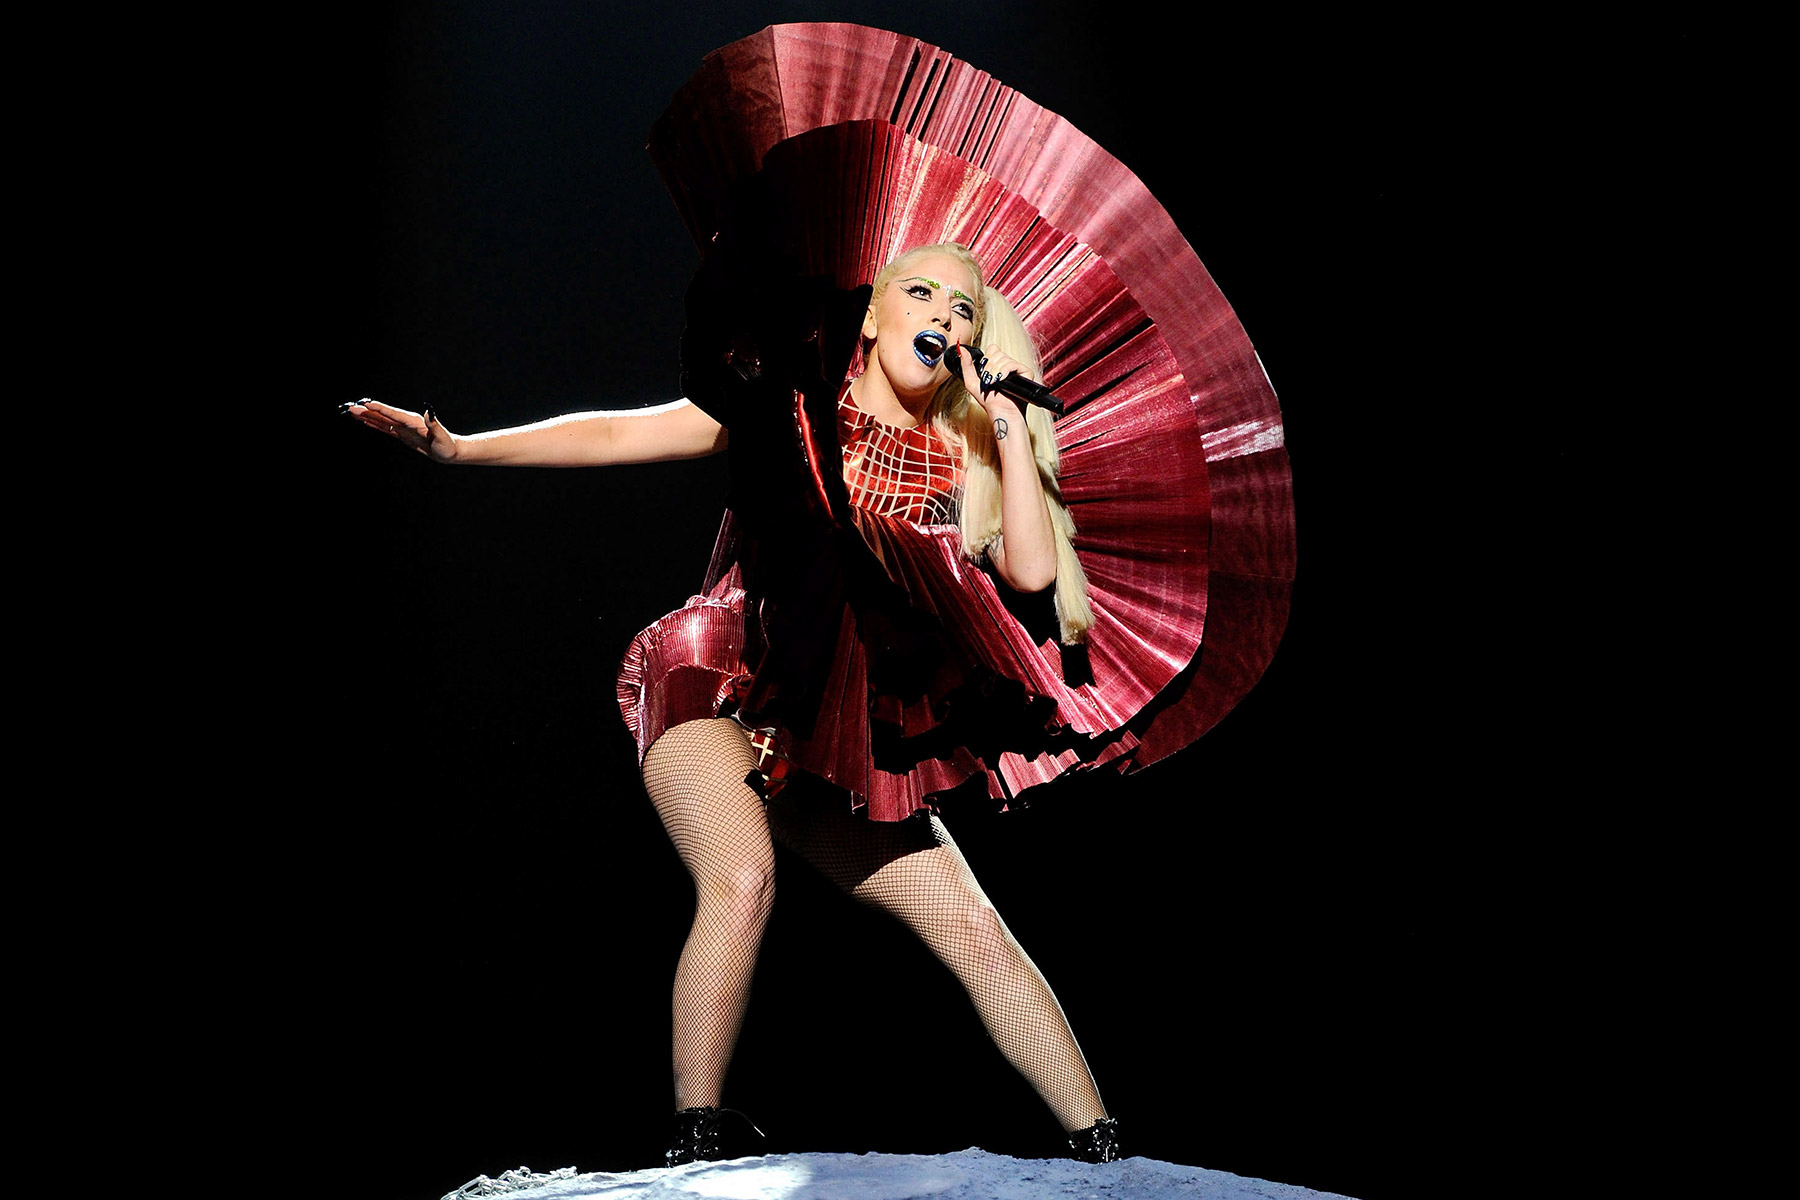 BELFAST, NORTHERN IRELAND - NOVEMBER 06:  Singer Lady Gaga performs onstage during the MTV Europe Music Awards 2011 live show at at the Odyssey Arena on November 6, 2011 in Belfast, Northern Ireland.  (Photo by Kevin Mazur/WireImage)